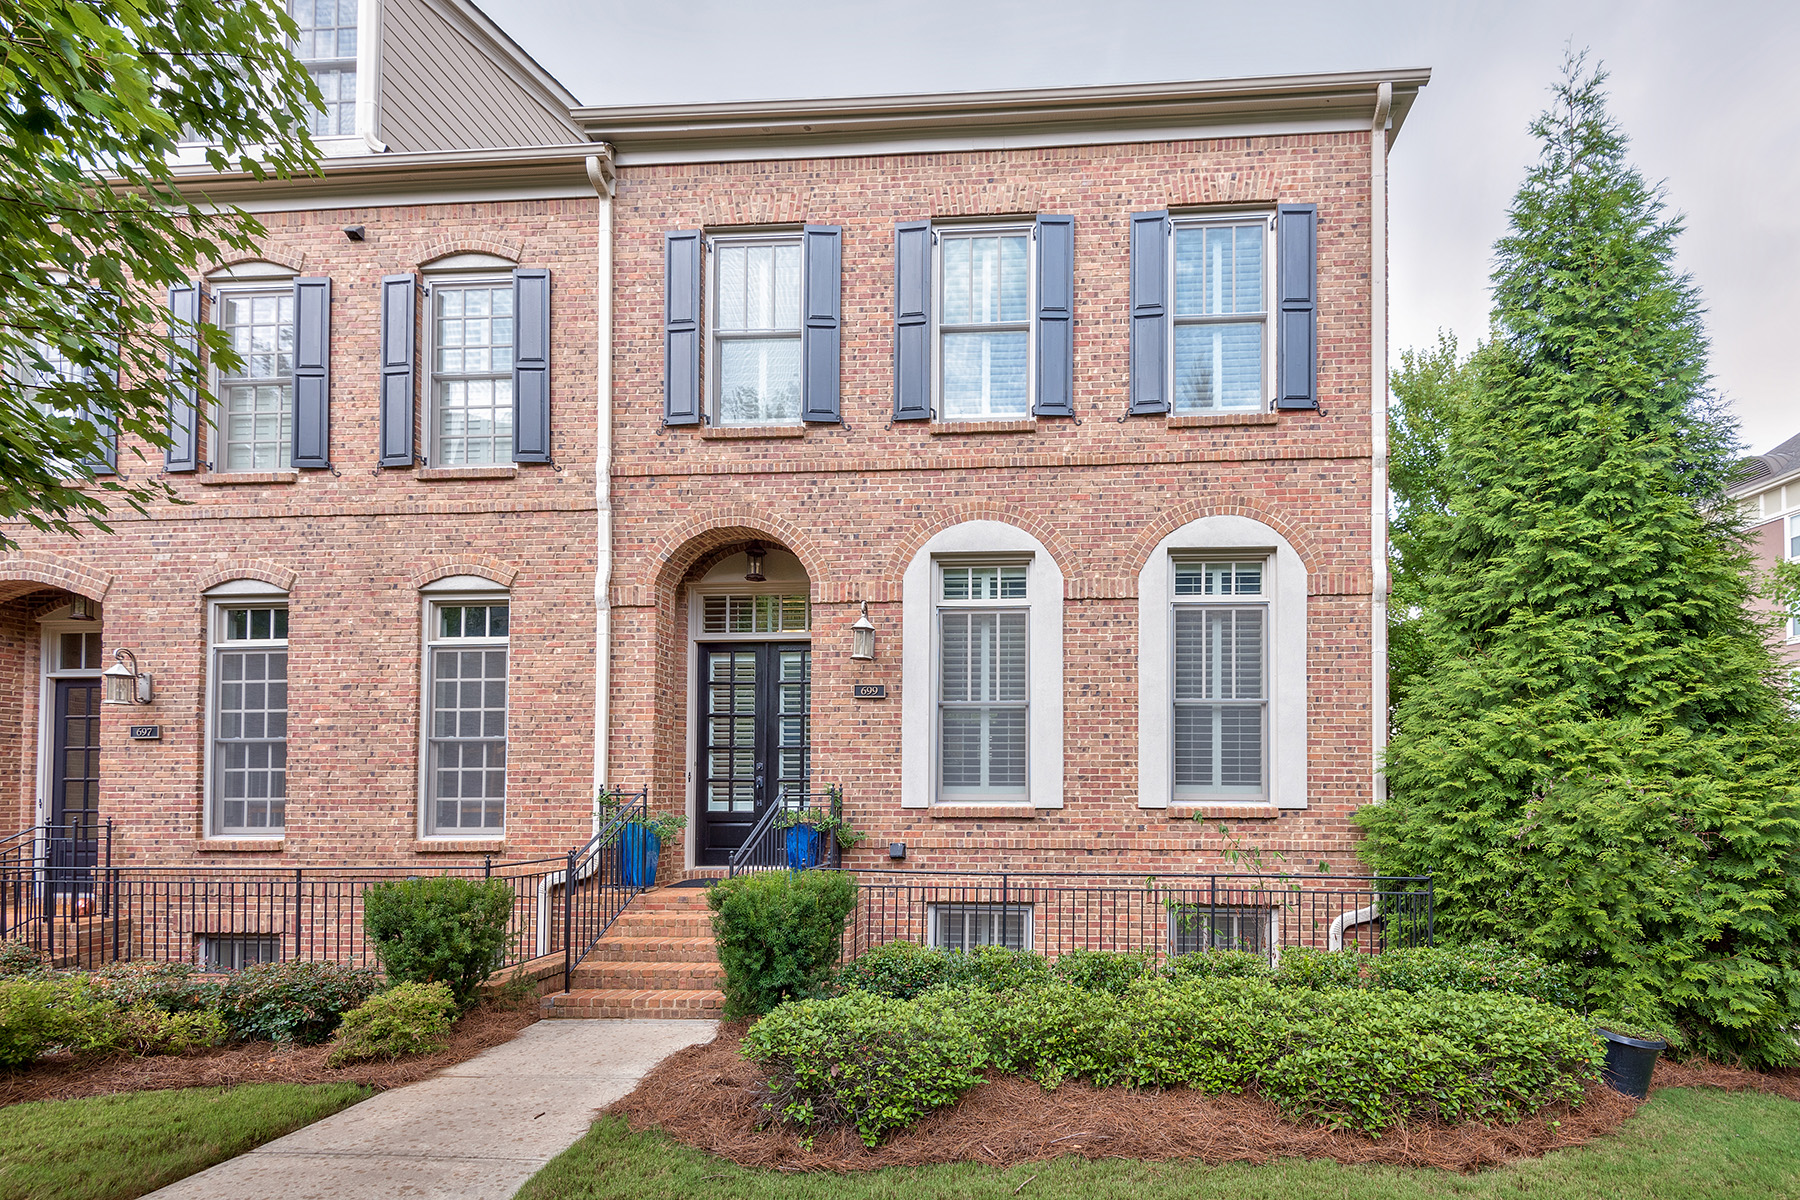 Townhouse for Sale at Luxurious Sandy Springs Townhome With Resort Like Amenities 699 Lockton Pl Sandy Springs, Georgia 30342 United States